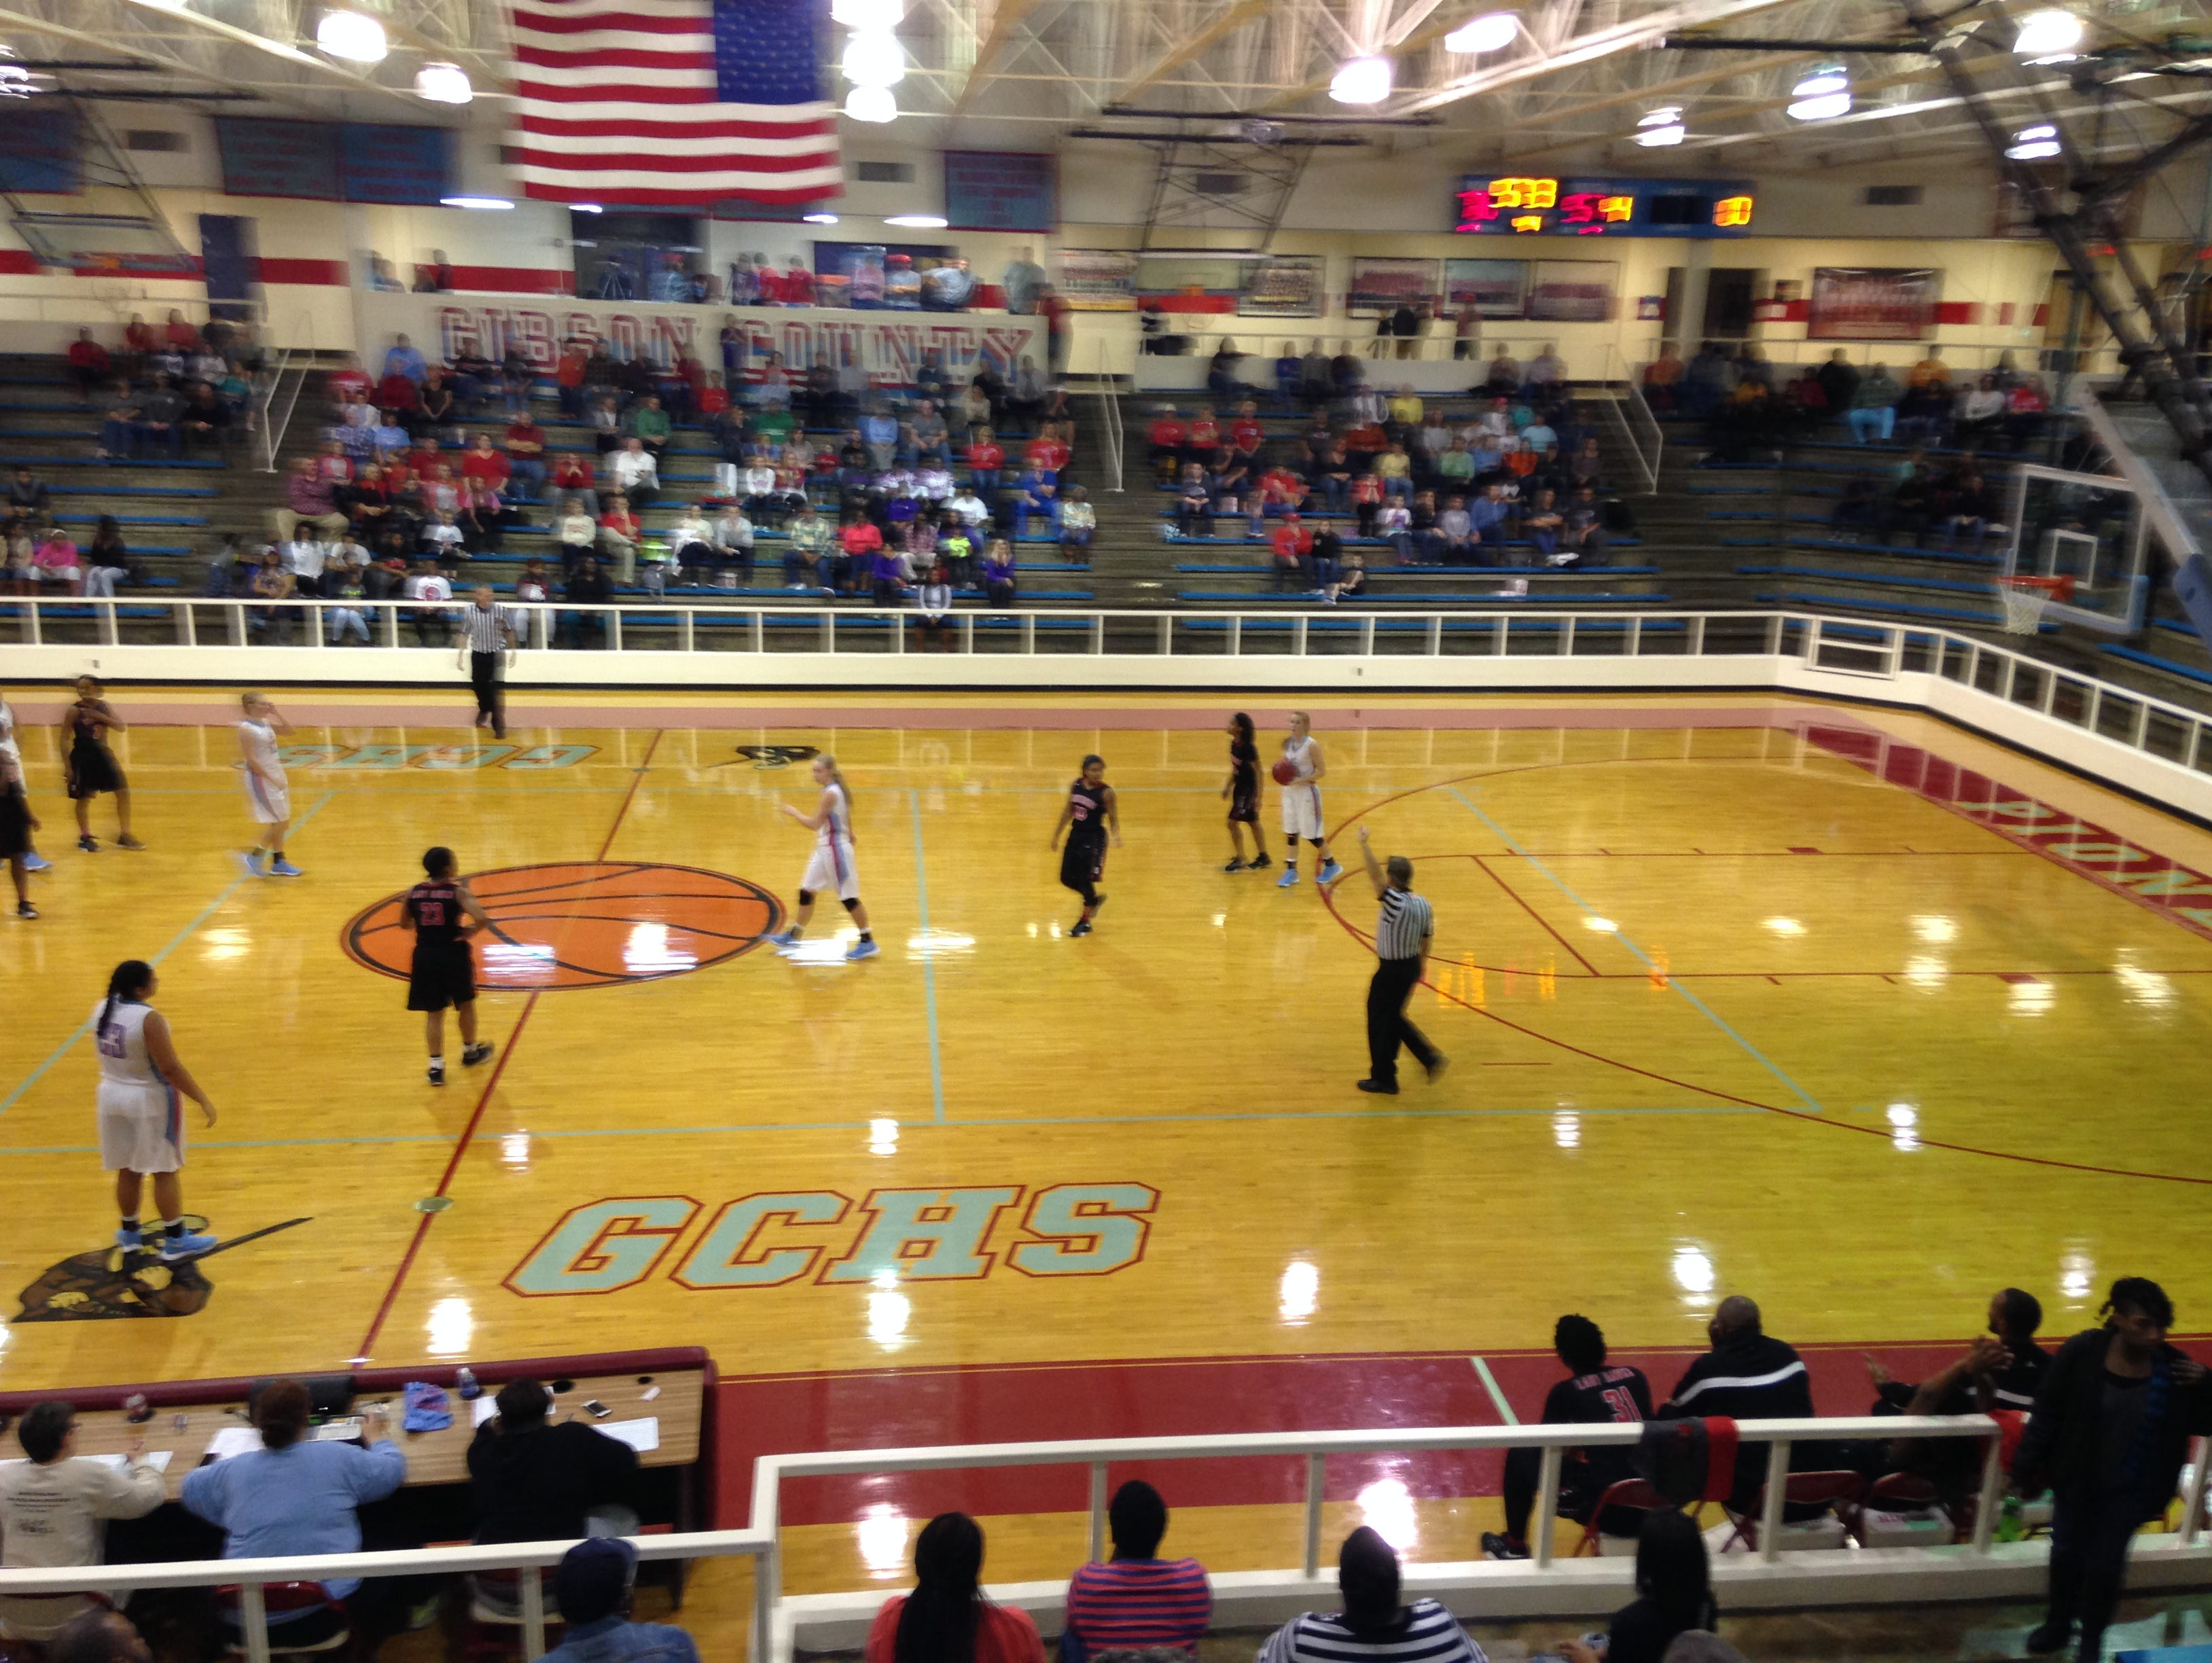 The Gibson County girls beat South Side 78-60 on Friday.